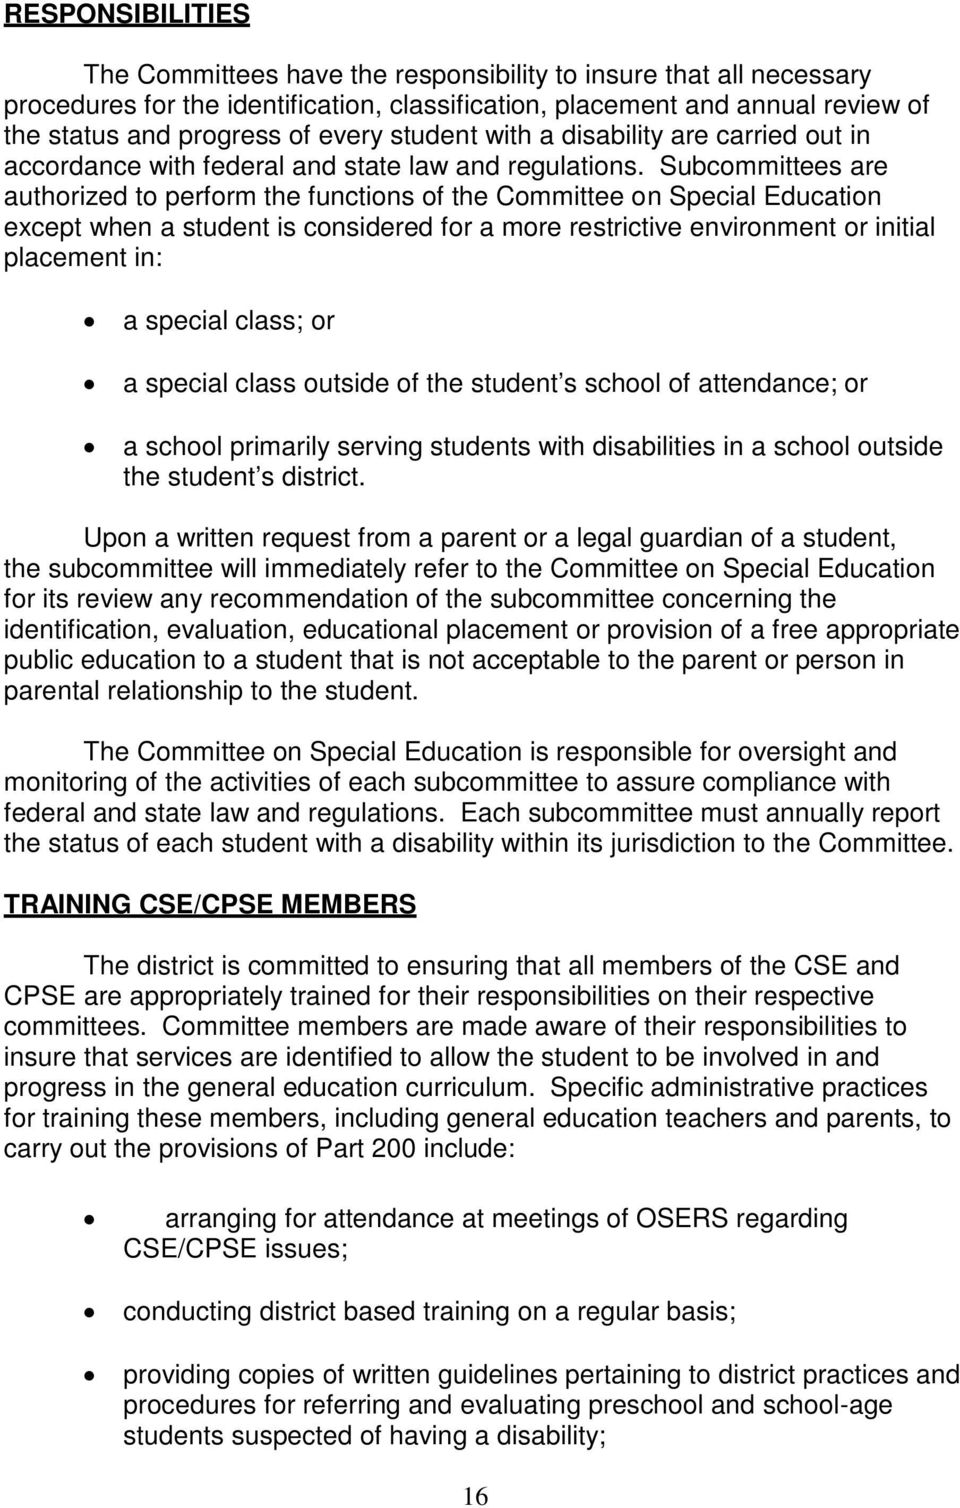 Subcommittees are authorized to perform the functions of the Committee on Special Education except when a student is considered for a more restrictive environment or initial placement in: a special